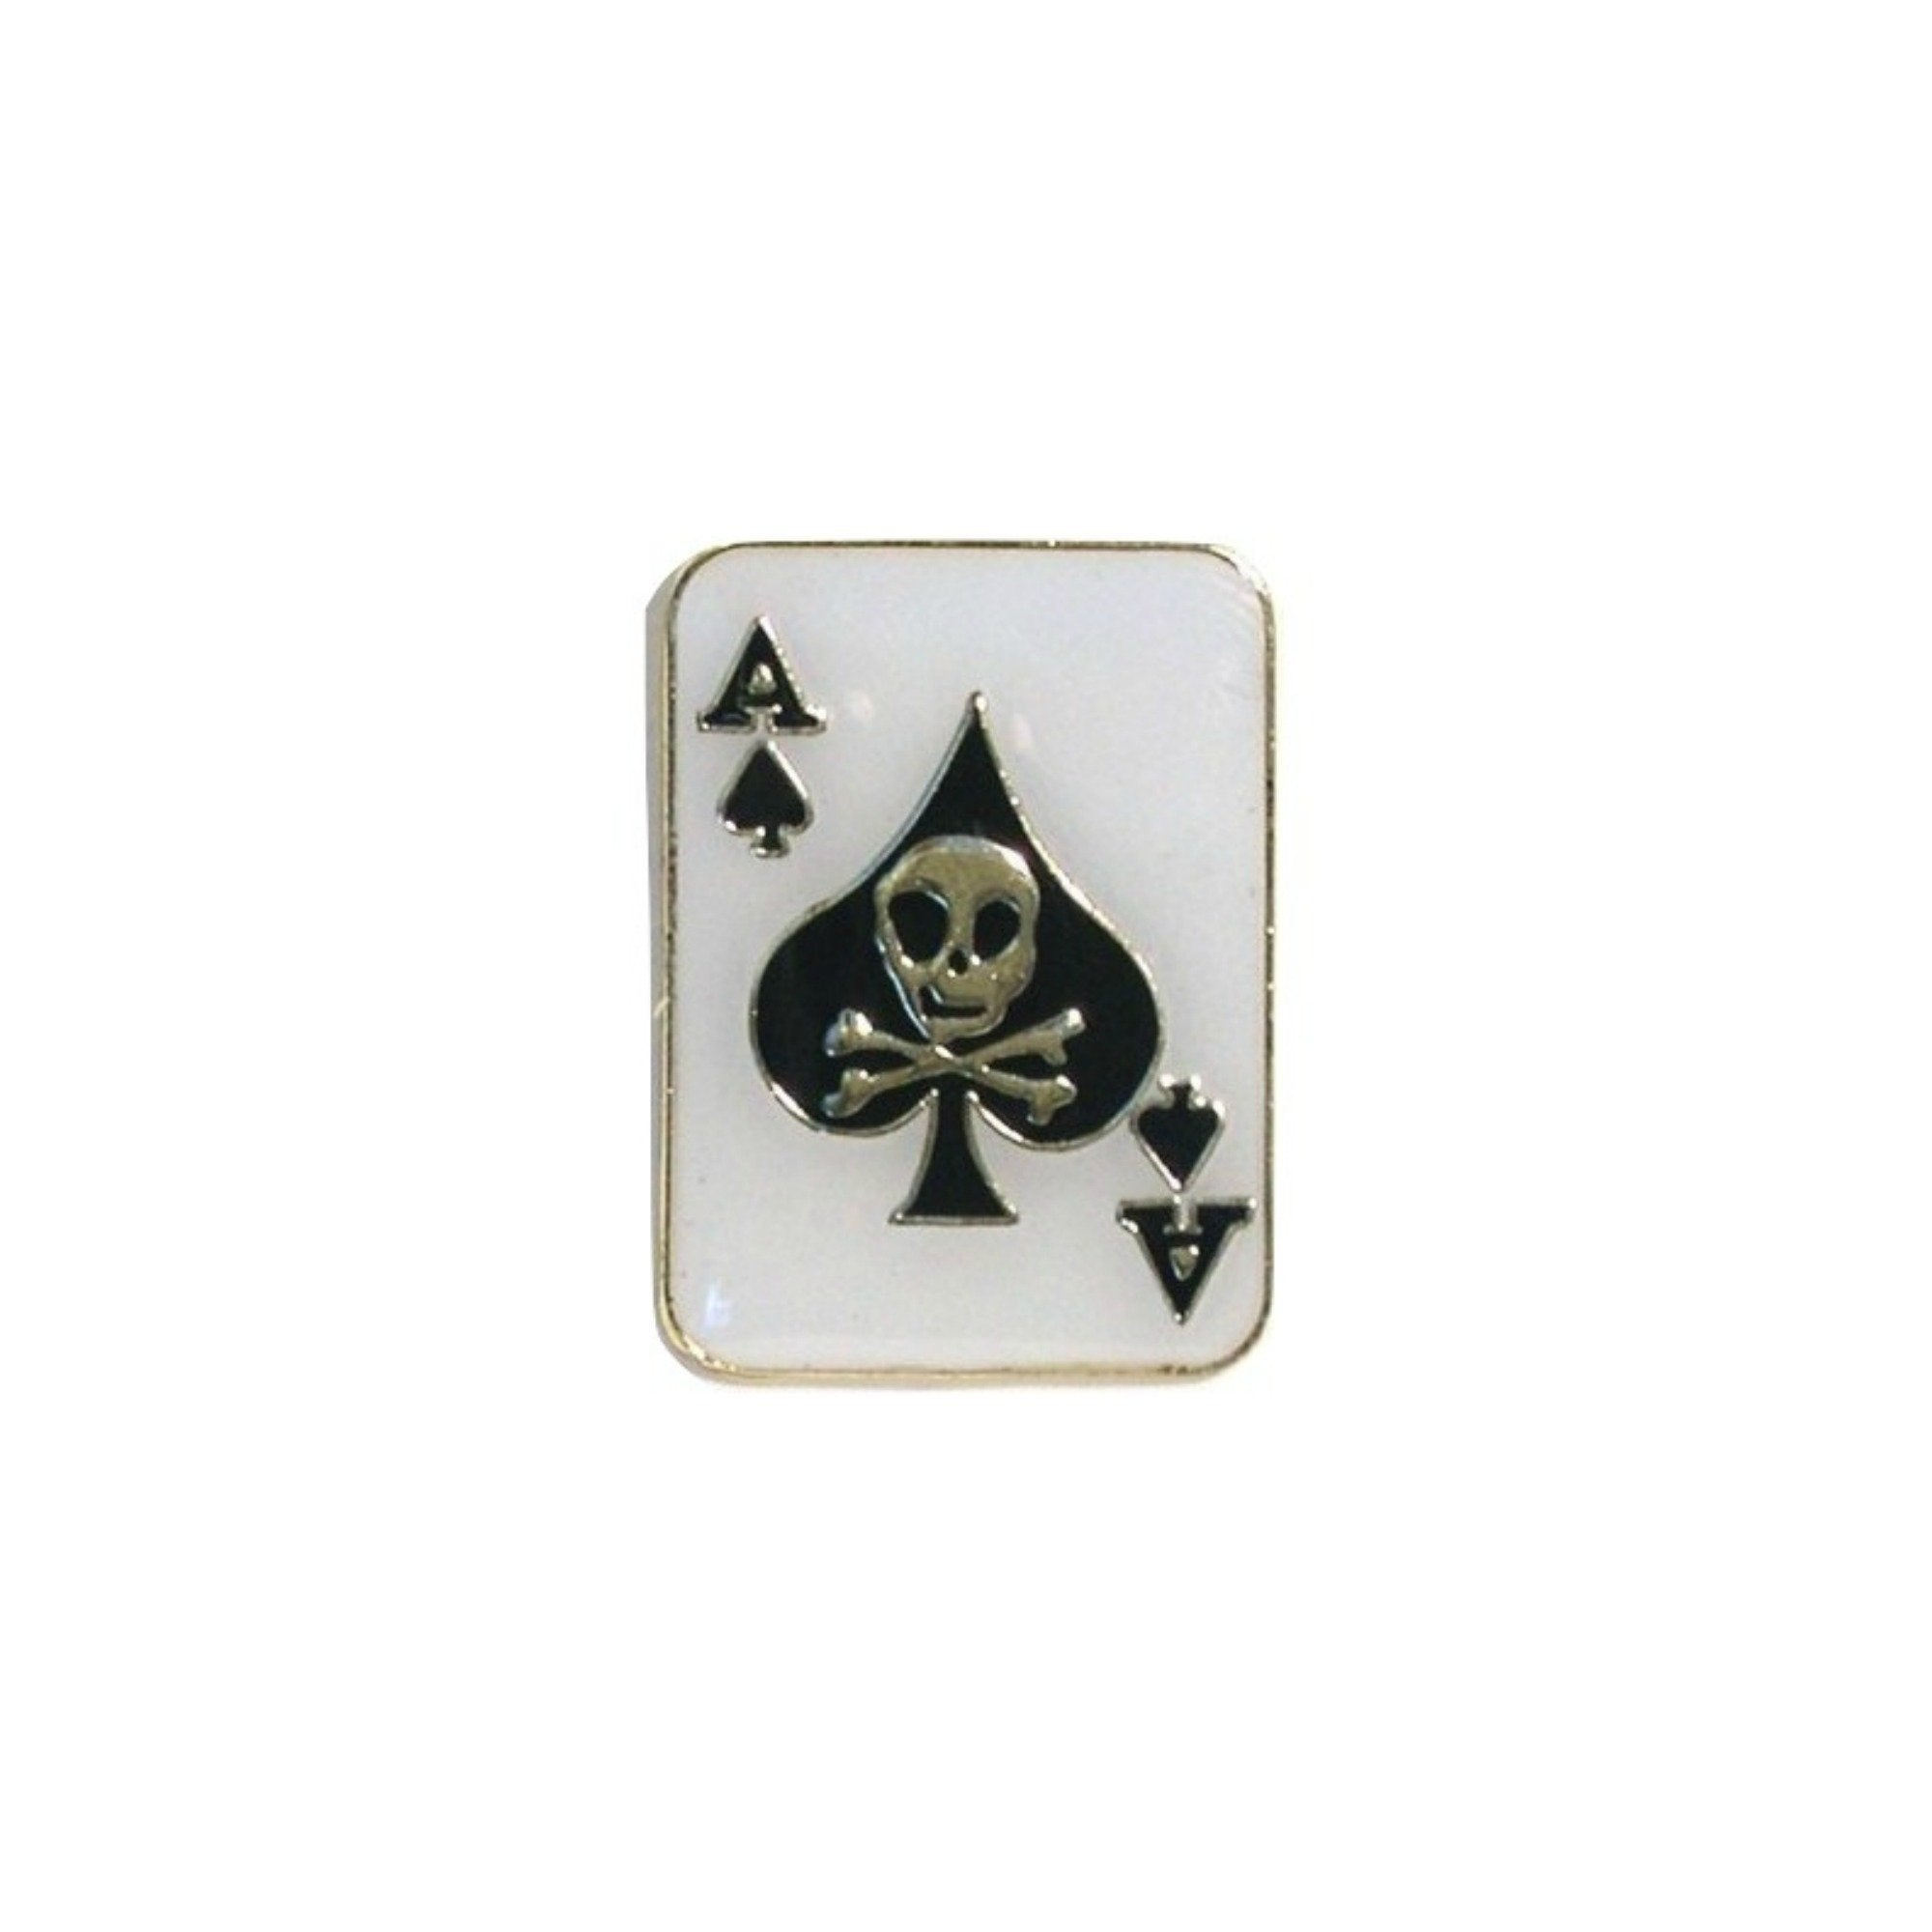 Ace Of Spades Enamel Lapel Pin Badge - Minimum Mouse